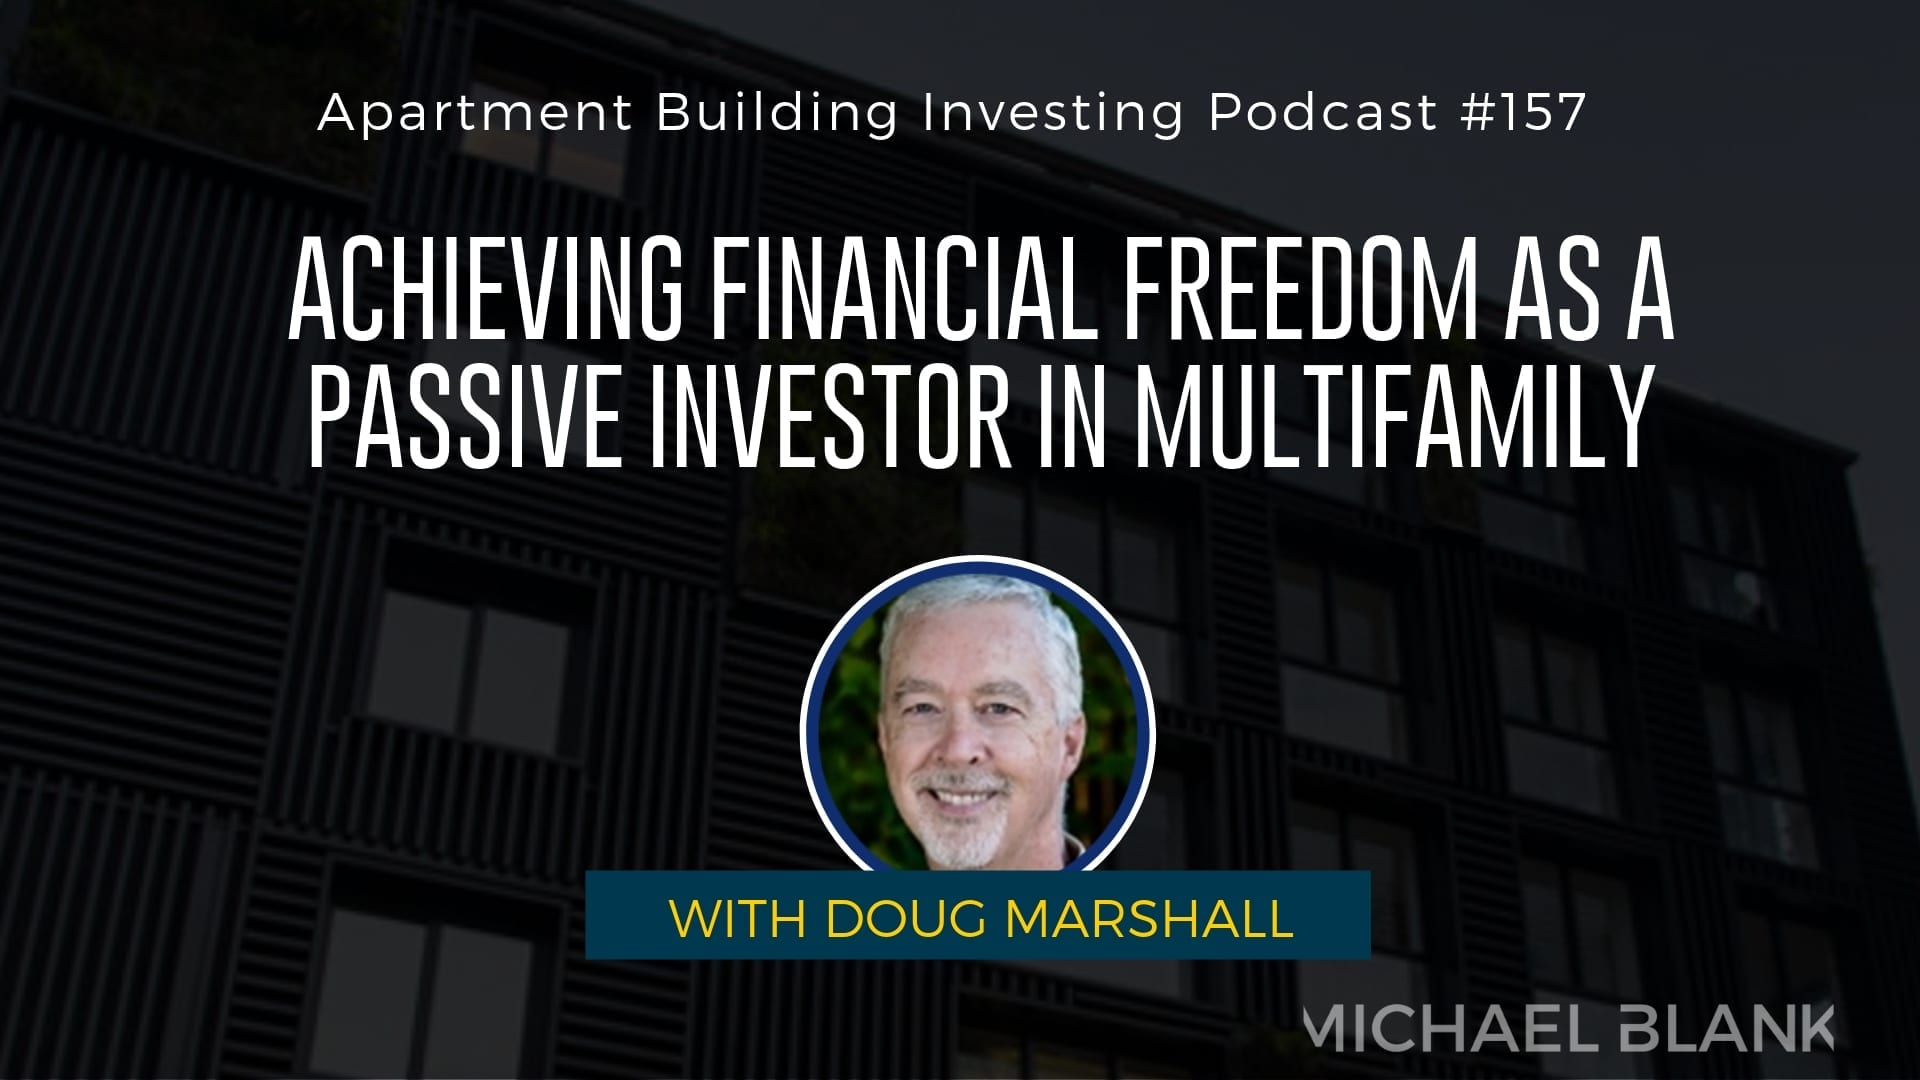 MB 157: Achieving Financial Freedom as a Passive Investor in Multifamily – With Doug Marshall